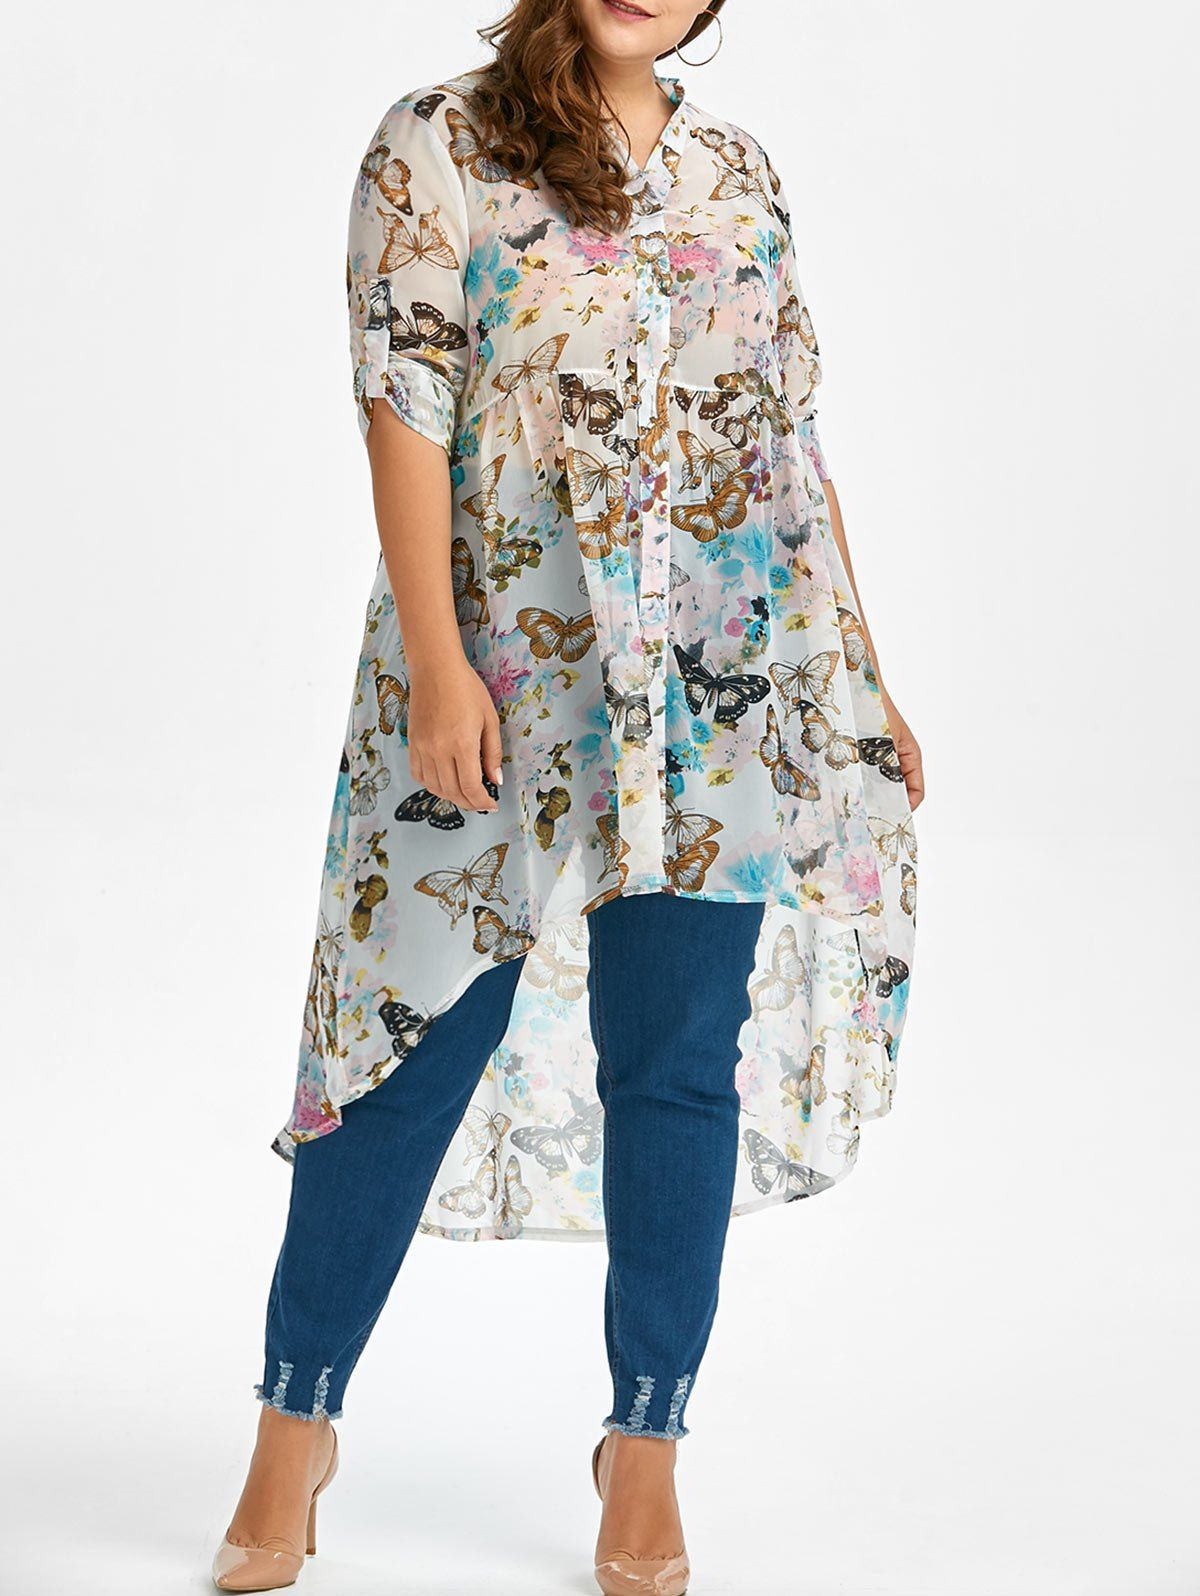 03d59c84da7 Wholesale Butterfly Print High Low Plus Size Top Xl White Online. Cheap  Butterfly Wing Scarf And Plus Size Skirt on Rosewholesale.com